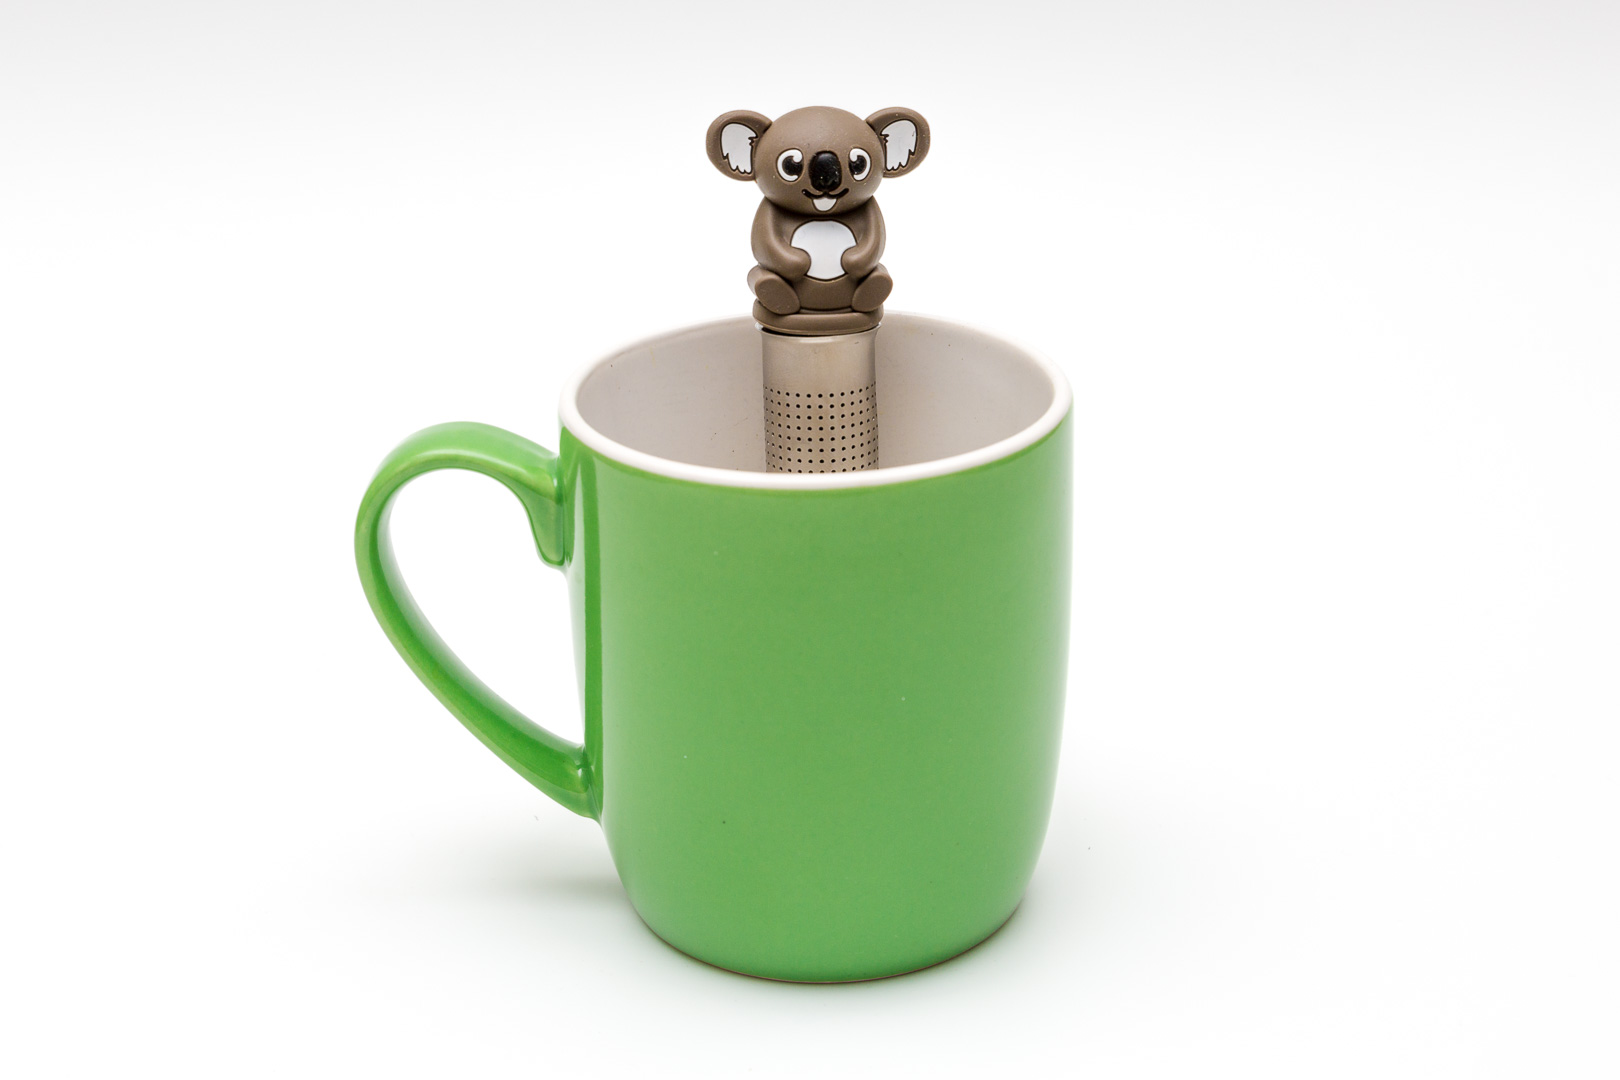 Add some Koala Bee Honey to sweeten your favourite tea. Use our    Koala Tea Infuser    with easy opening loose leaf tea infuser to make tea time fun.